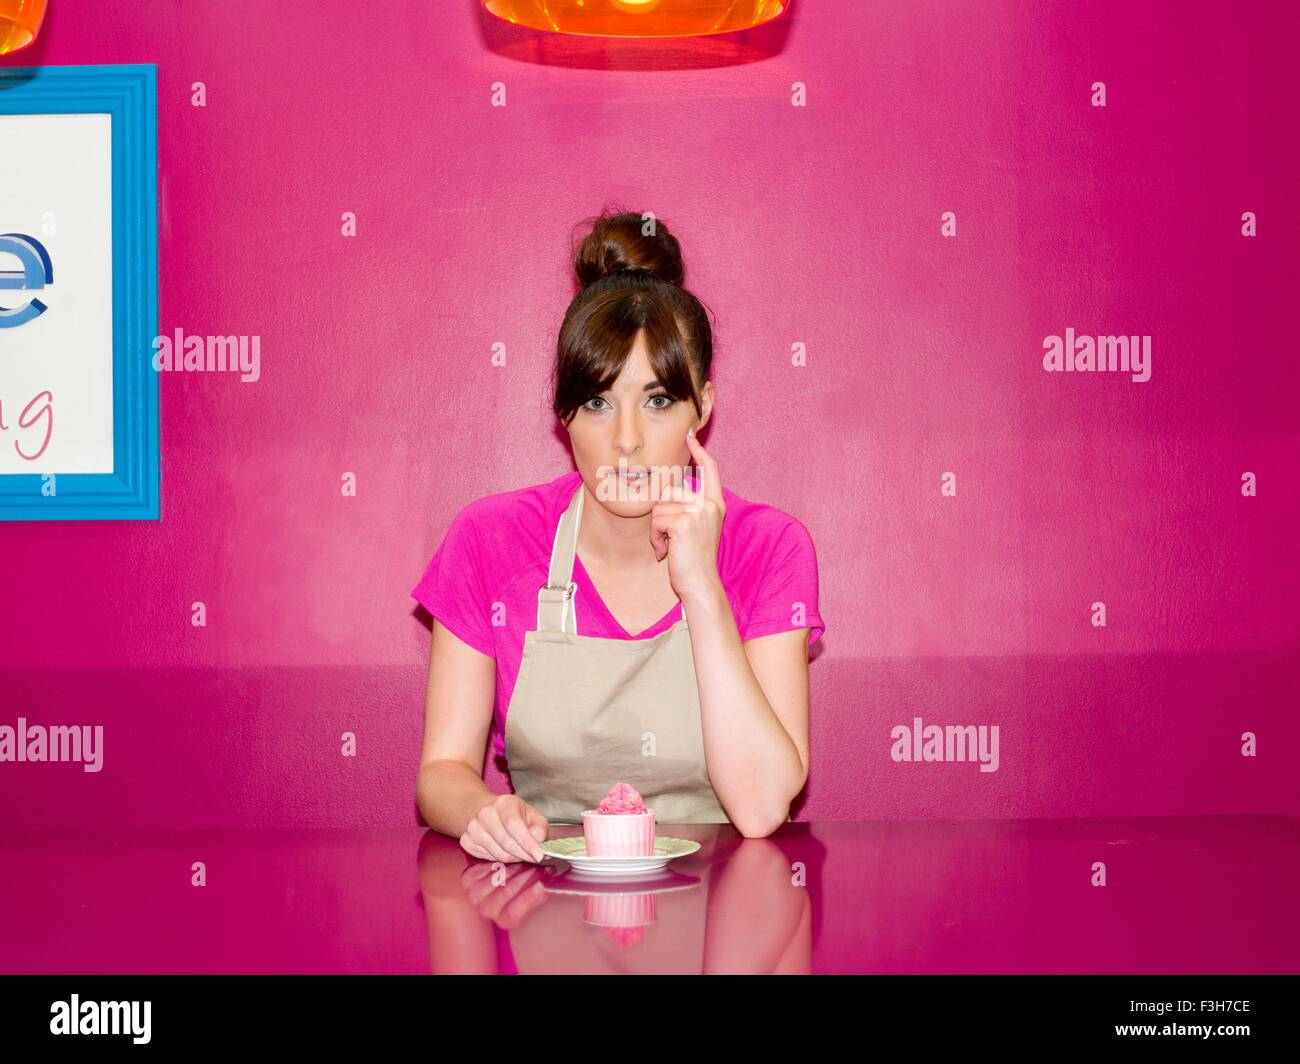 Young woman, working in cake shop, sitting with cupcake in front of her - Stock Image